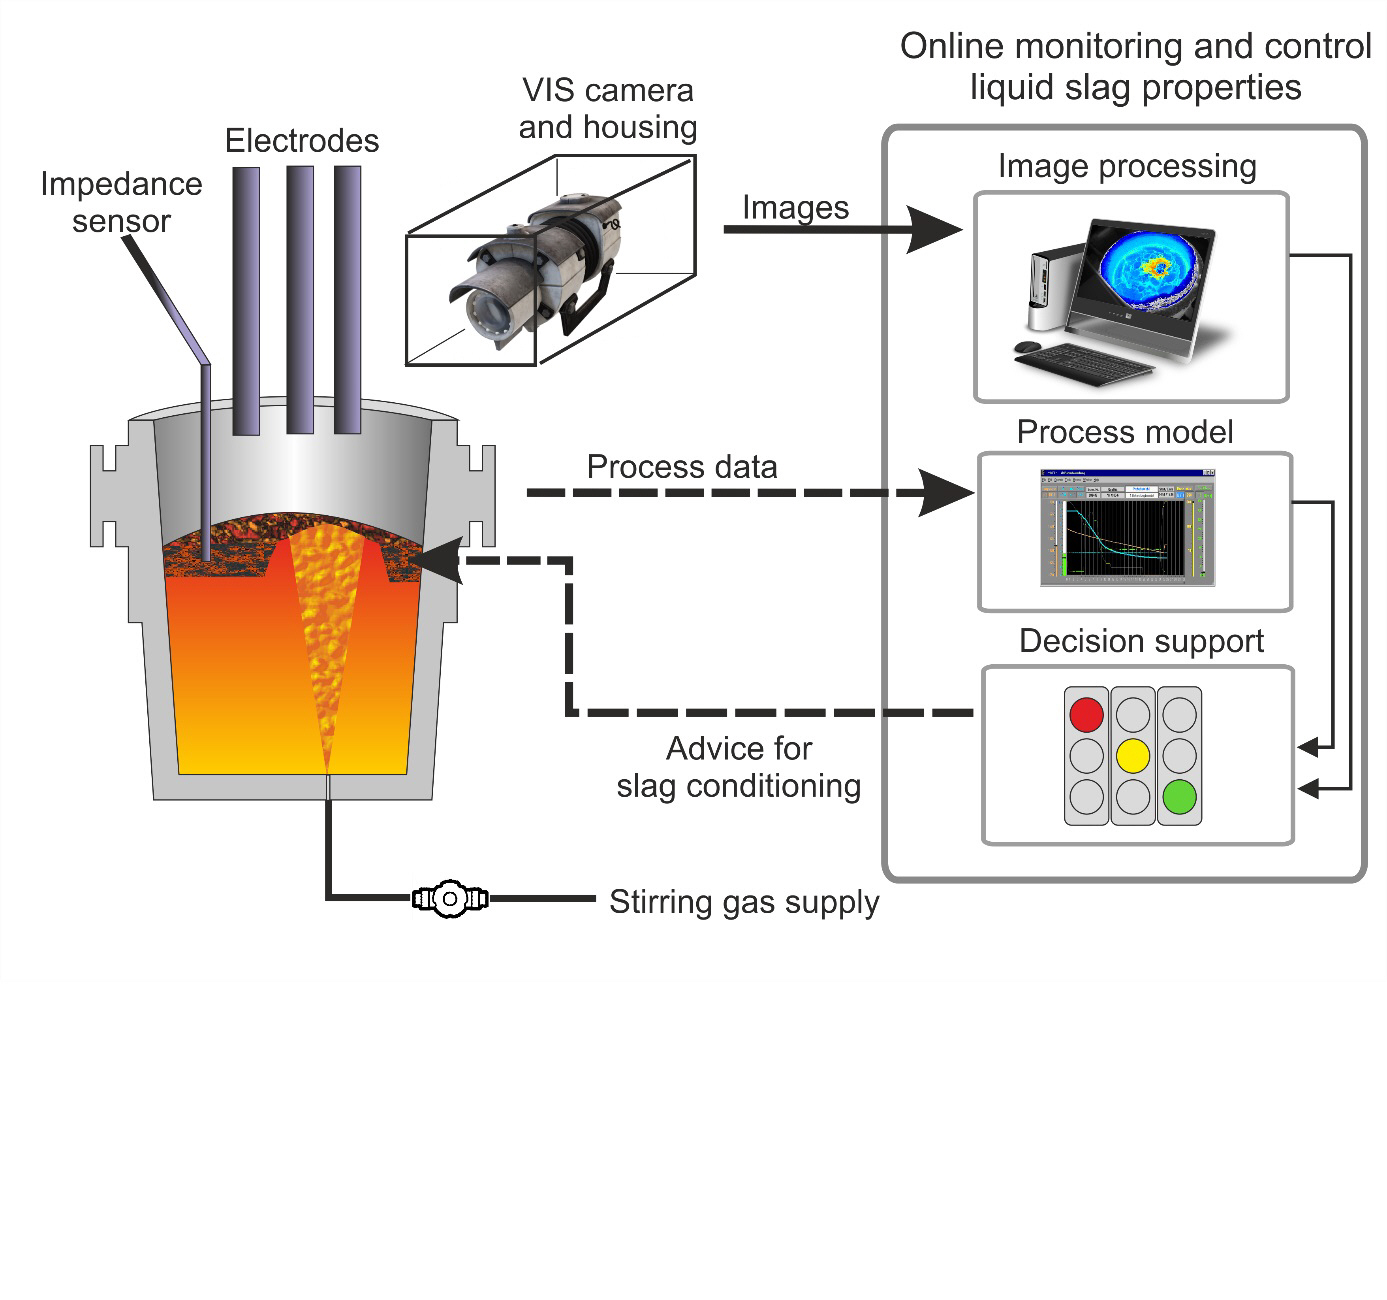 Schematic illustration of online monitoring and control system